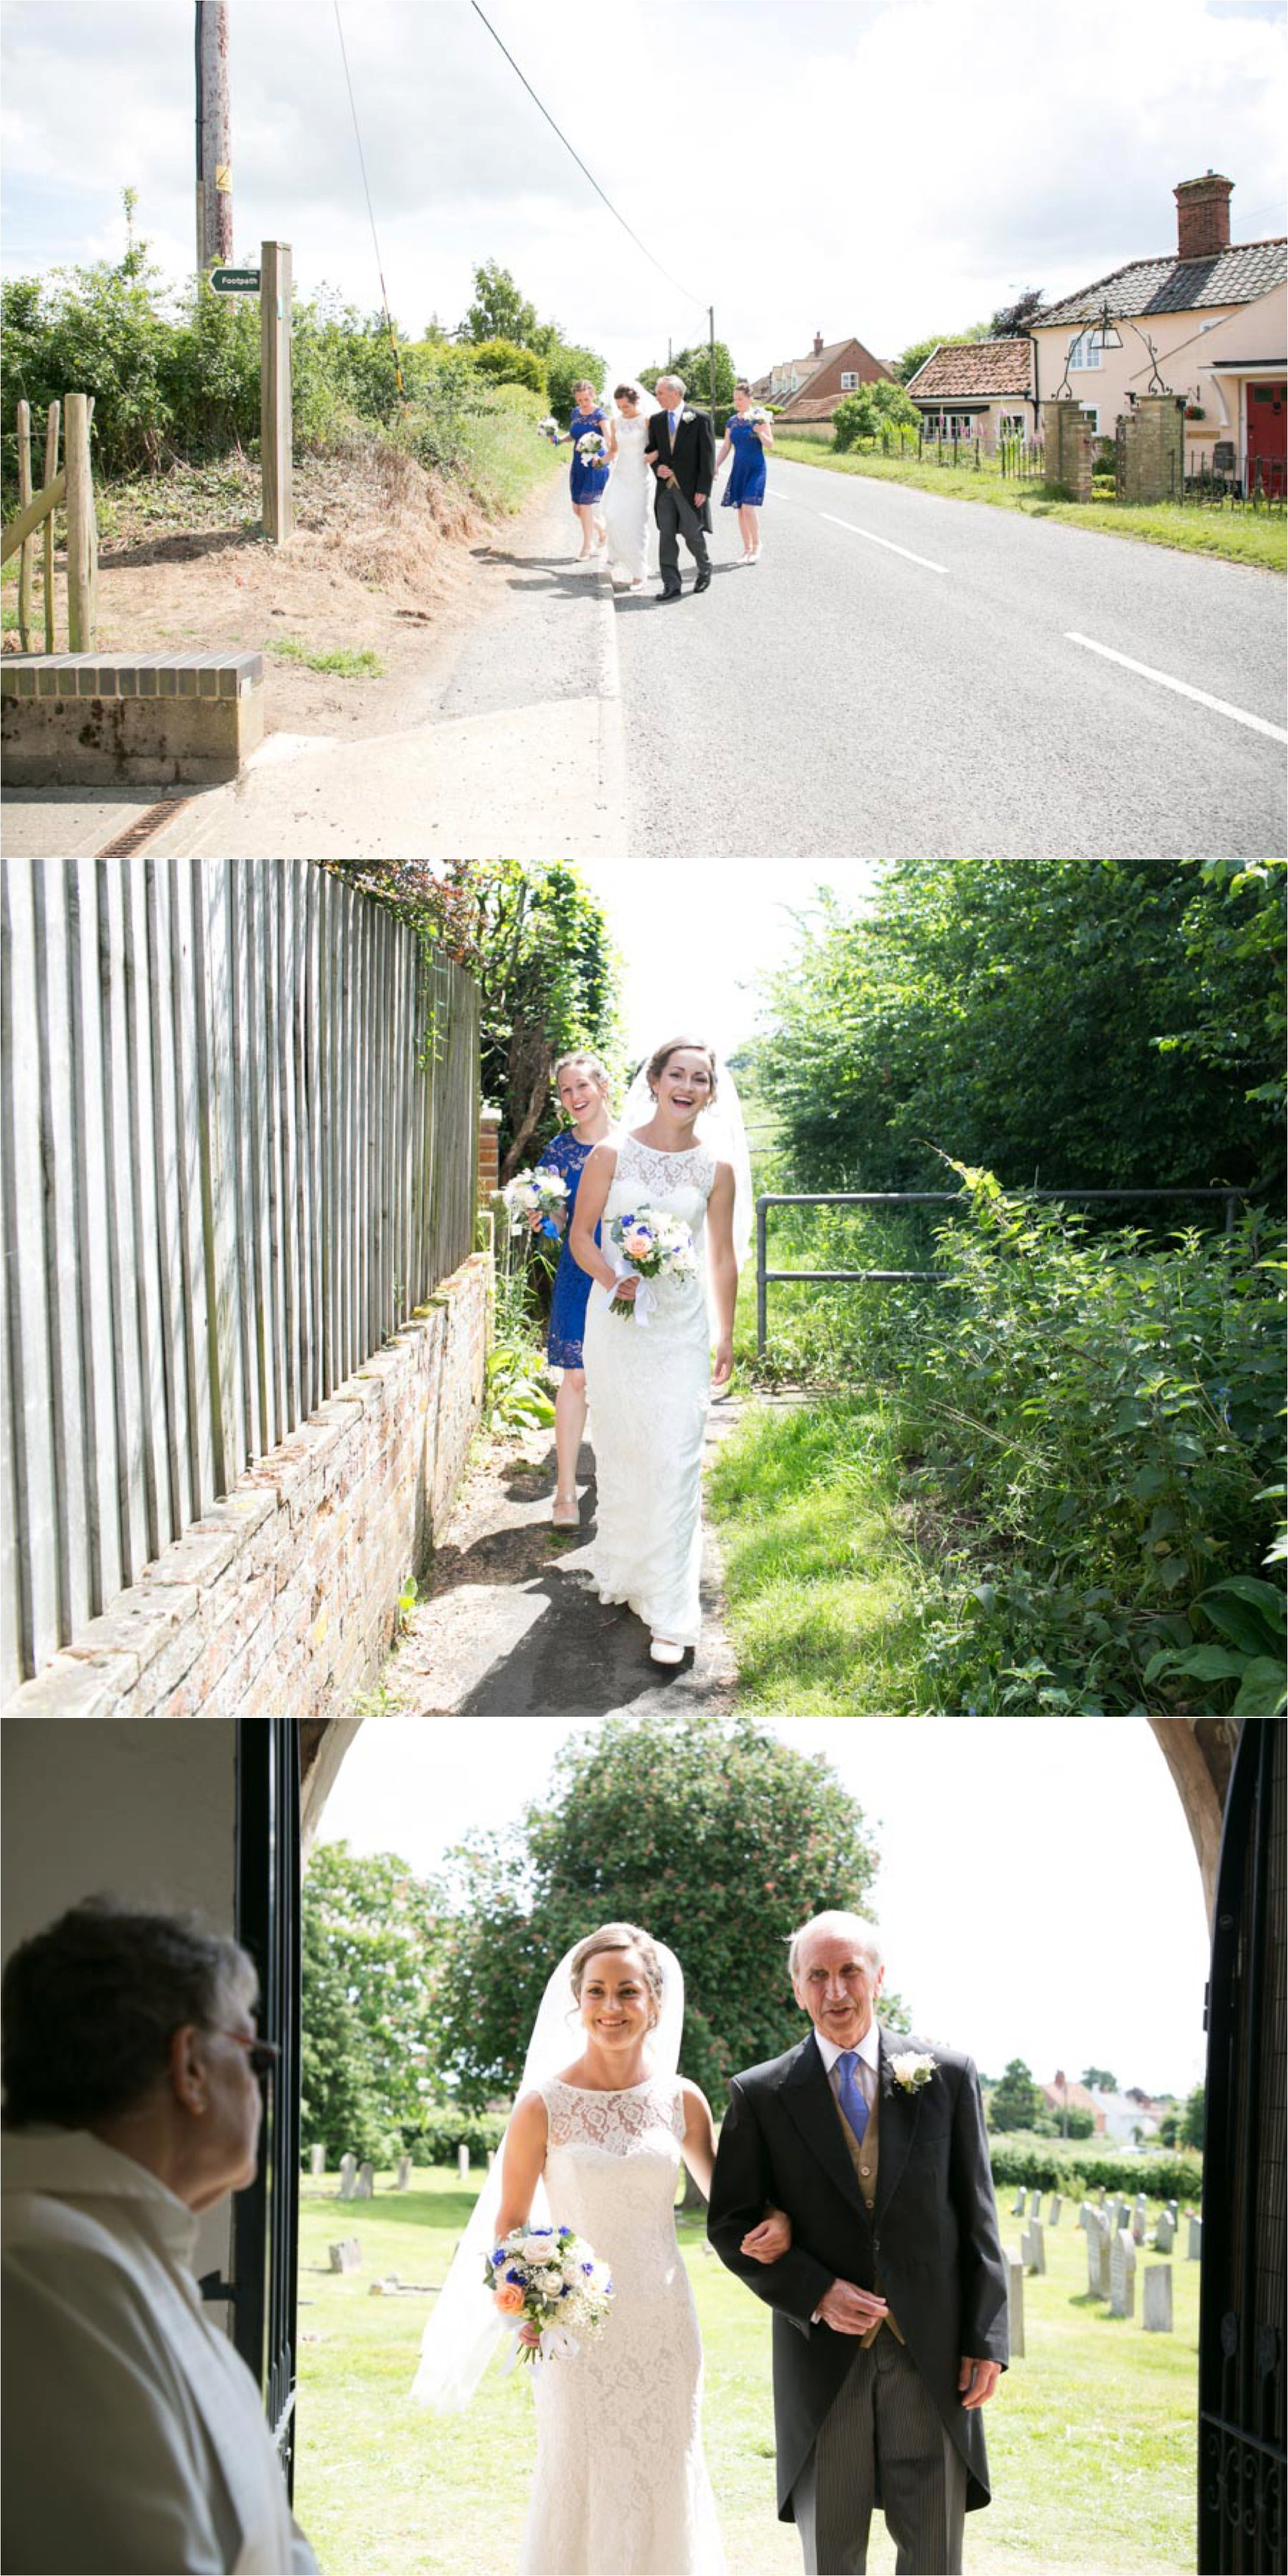 Bride walking to the church with dad, suffolk wedding photography